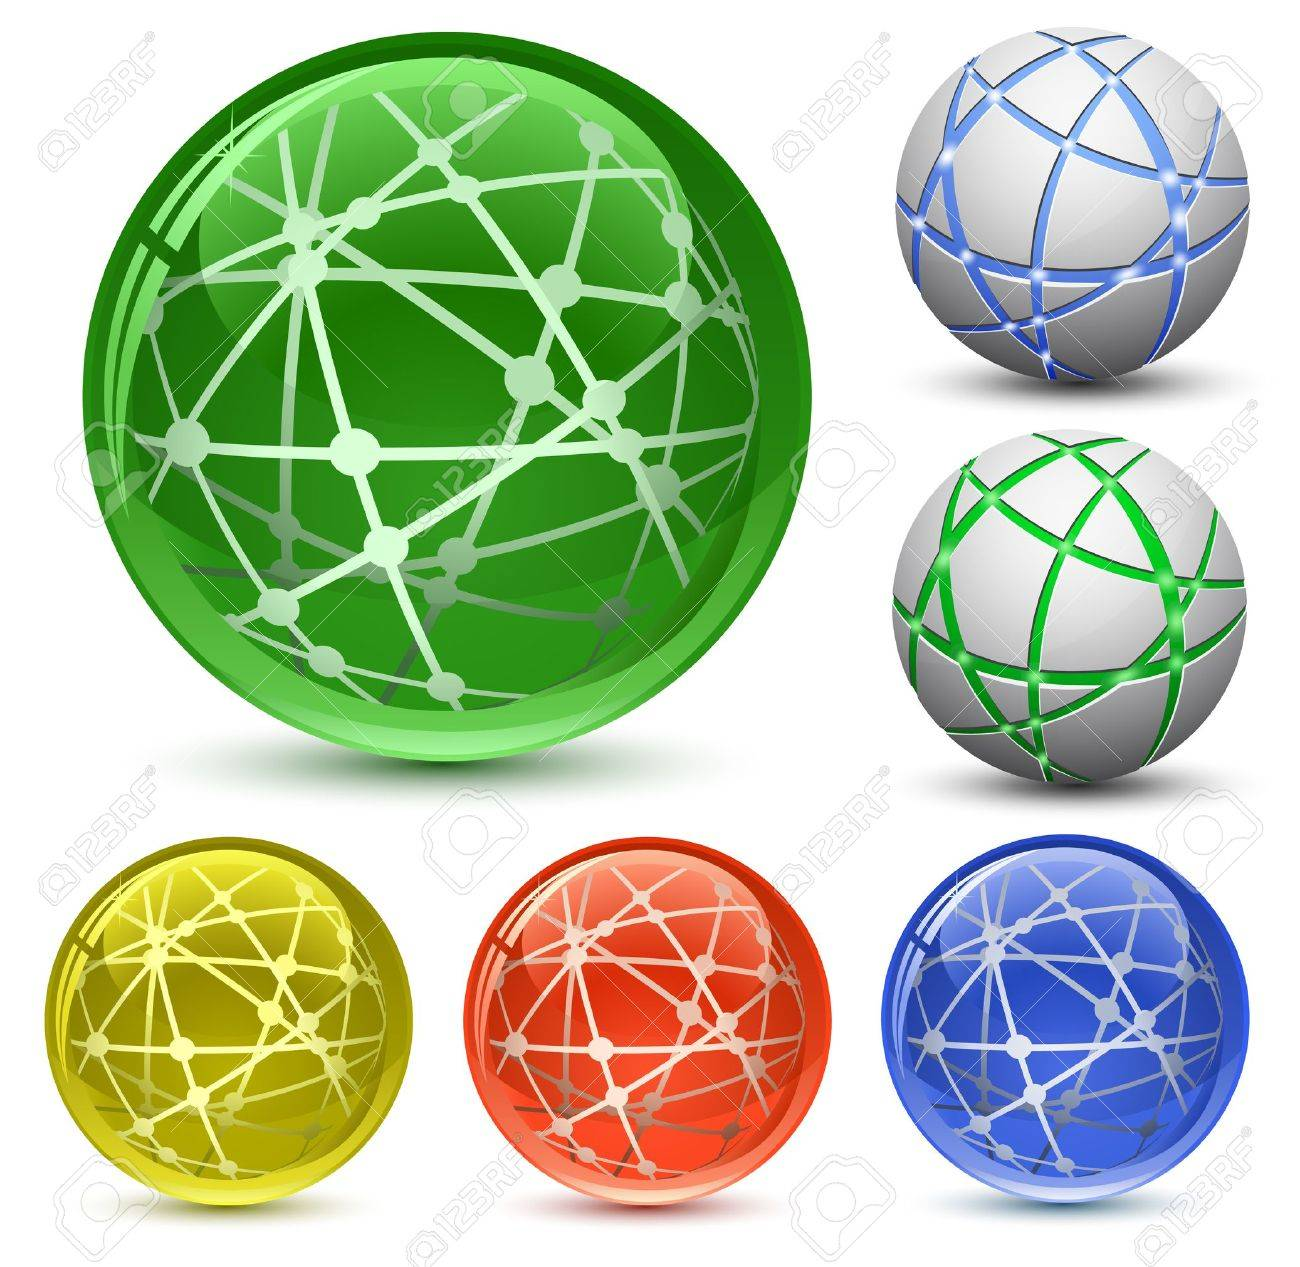 Abstract Globe Icon Set. Communication and Network Concept. Vector Illustration EPS8 Stock Vector - 10445599